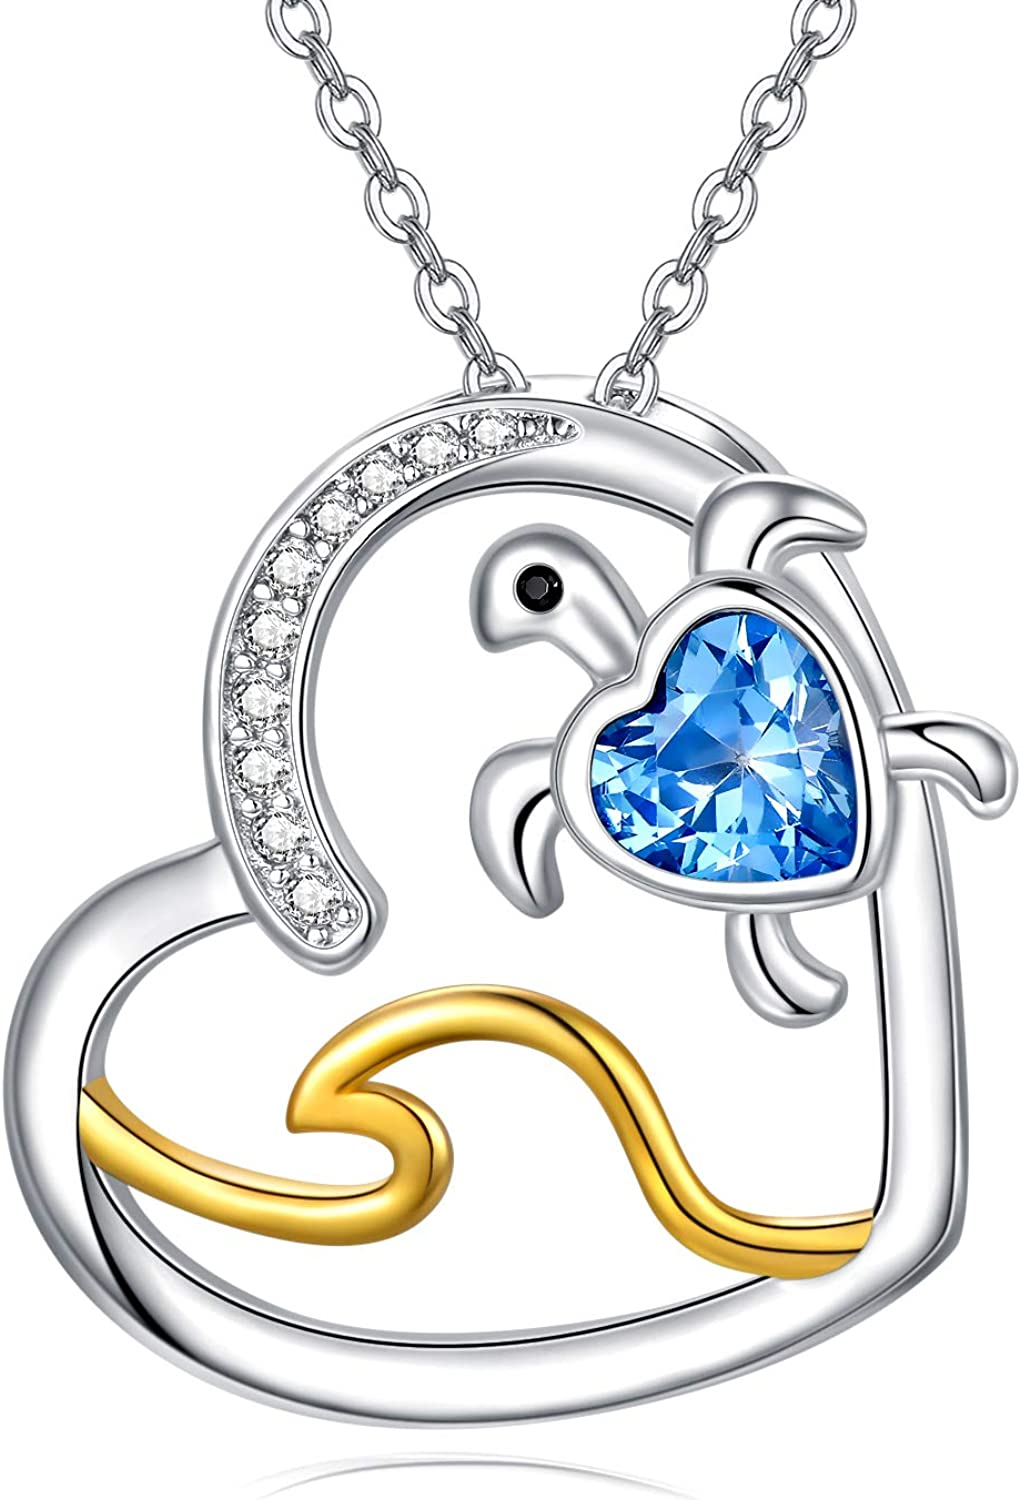 Opal Product Turtle Raleigh Mall Necklaces for Women Blue Sterling Crysta S925 Silver